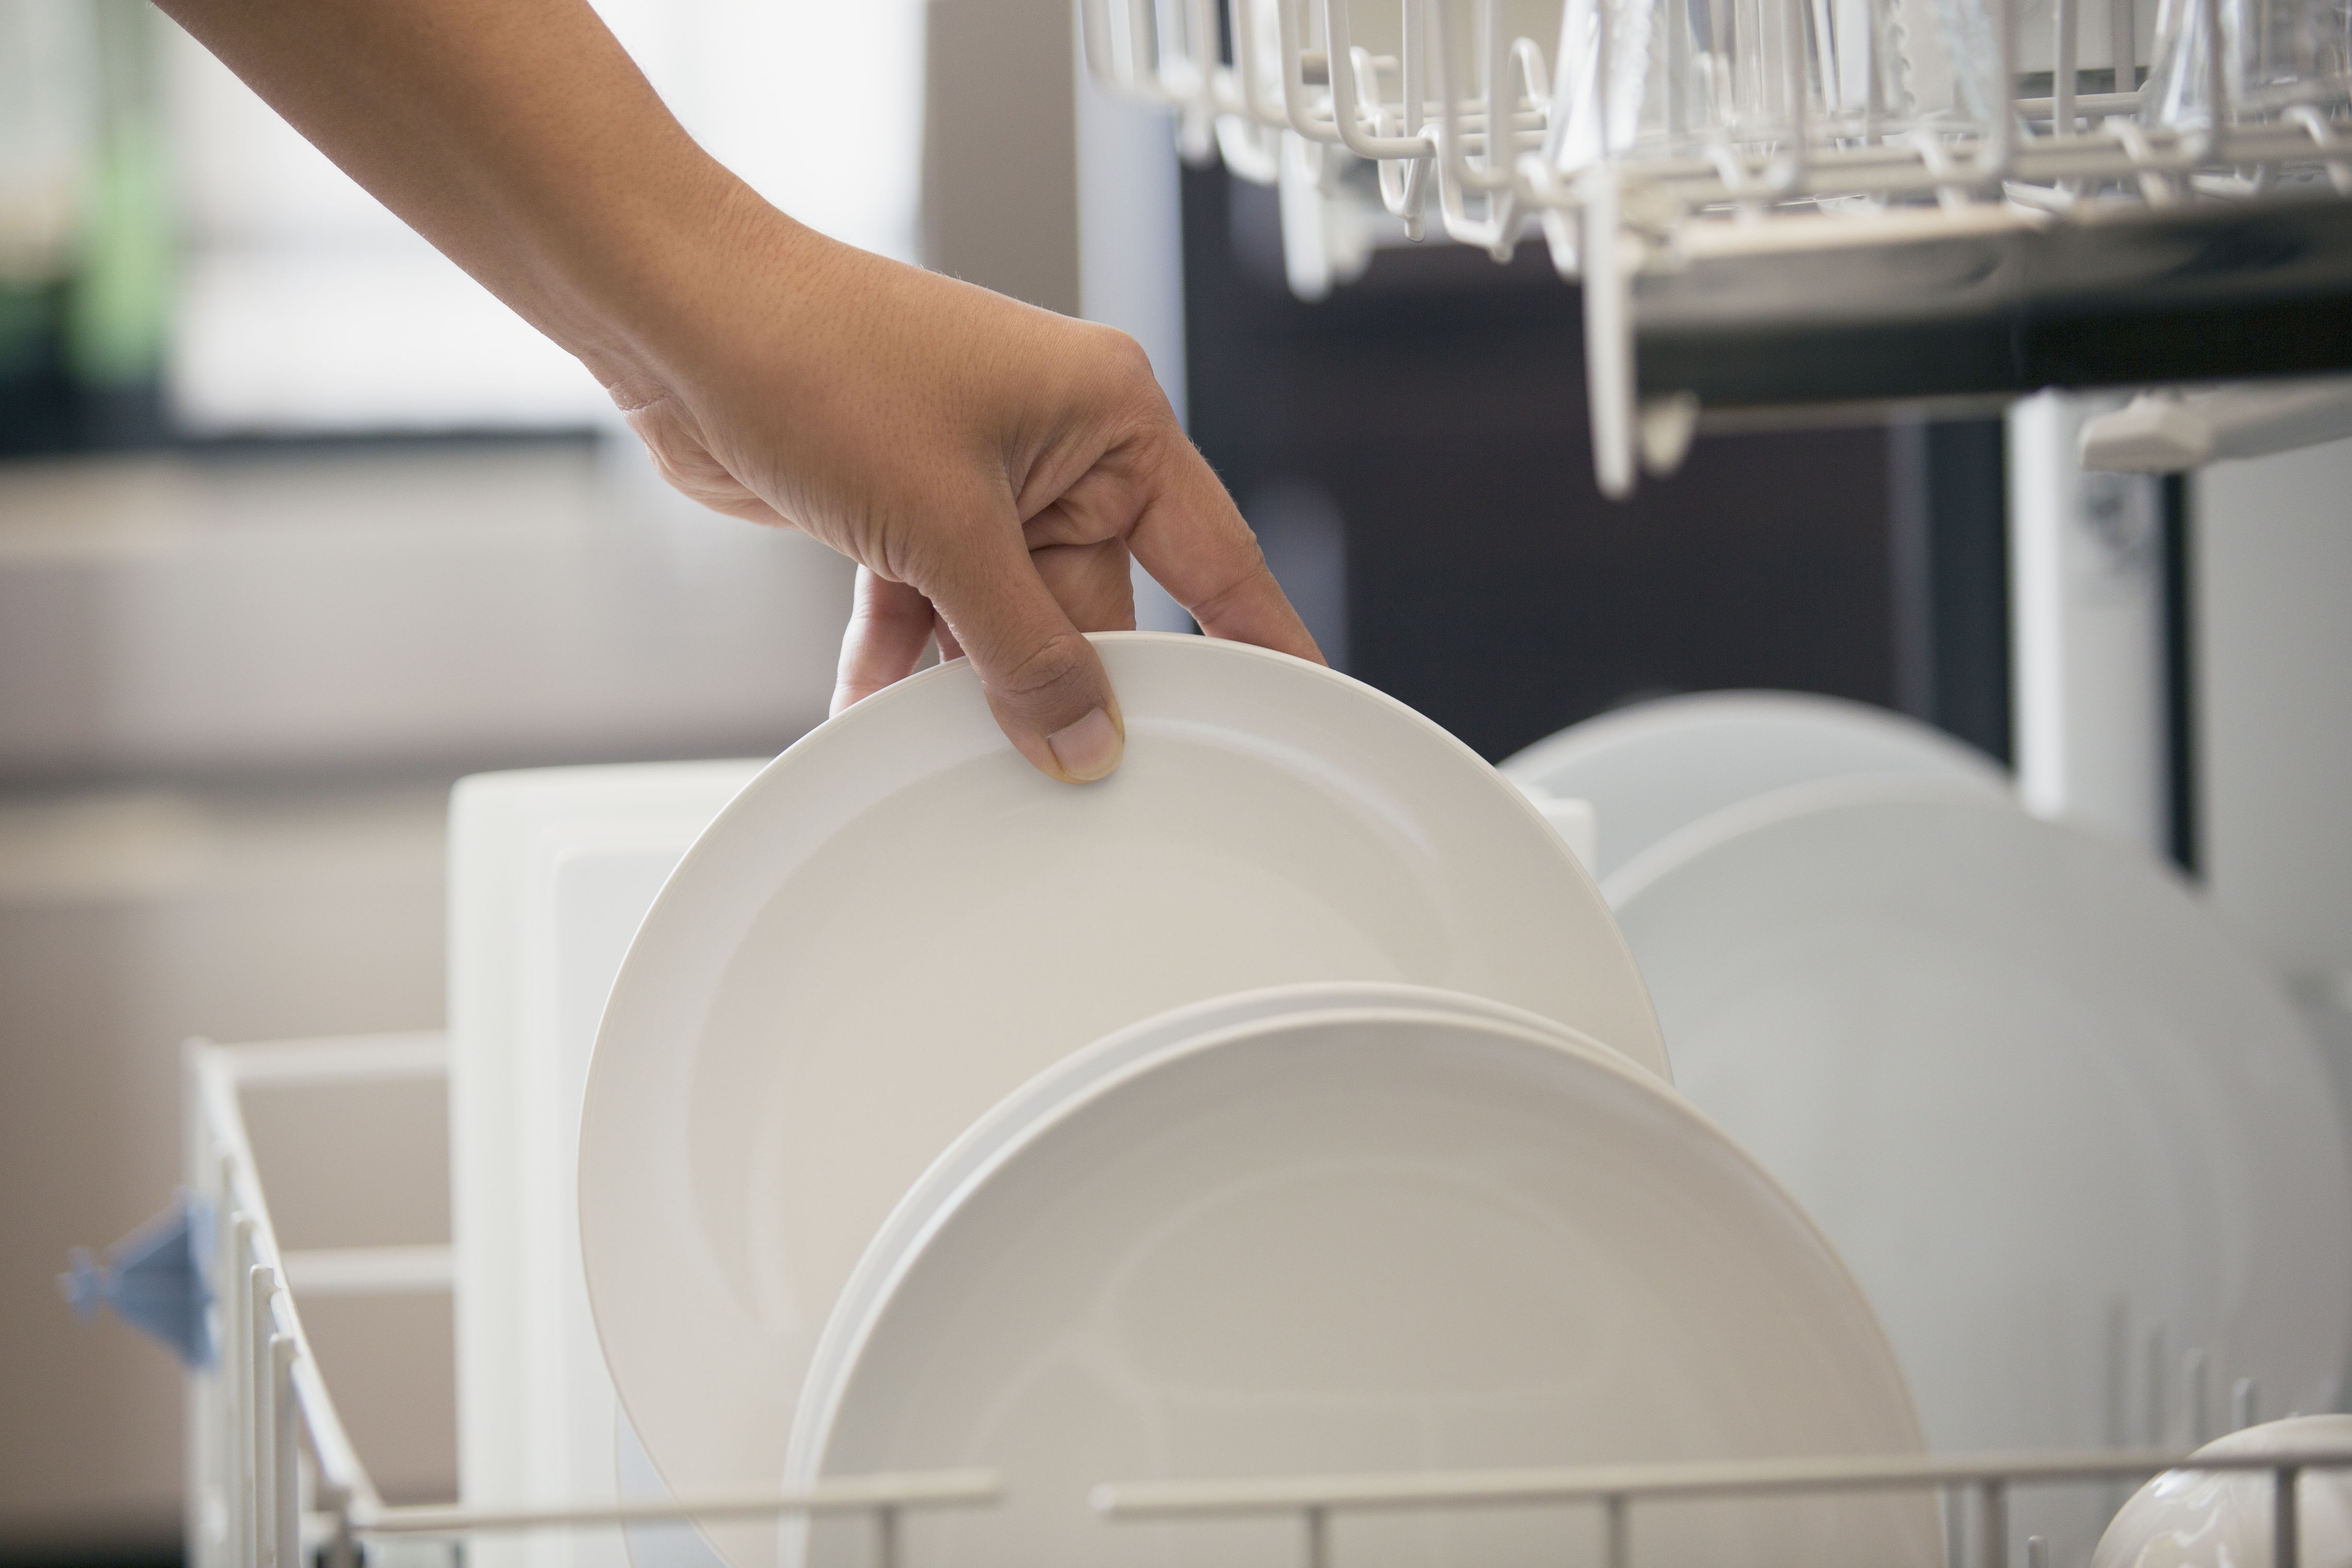 11 Things You Should Never (Ever!) Put in Your Dishwasher